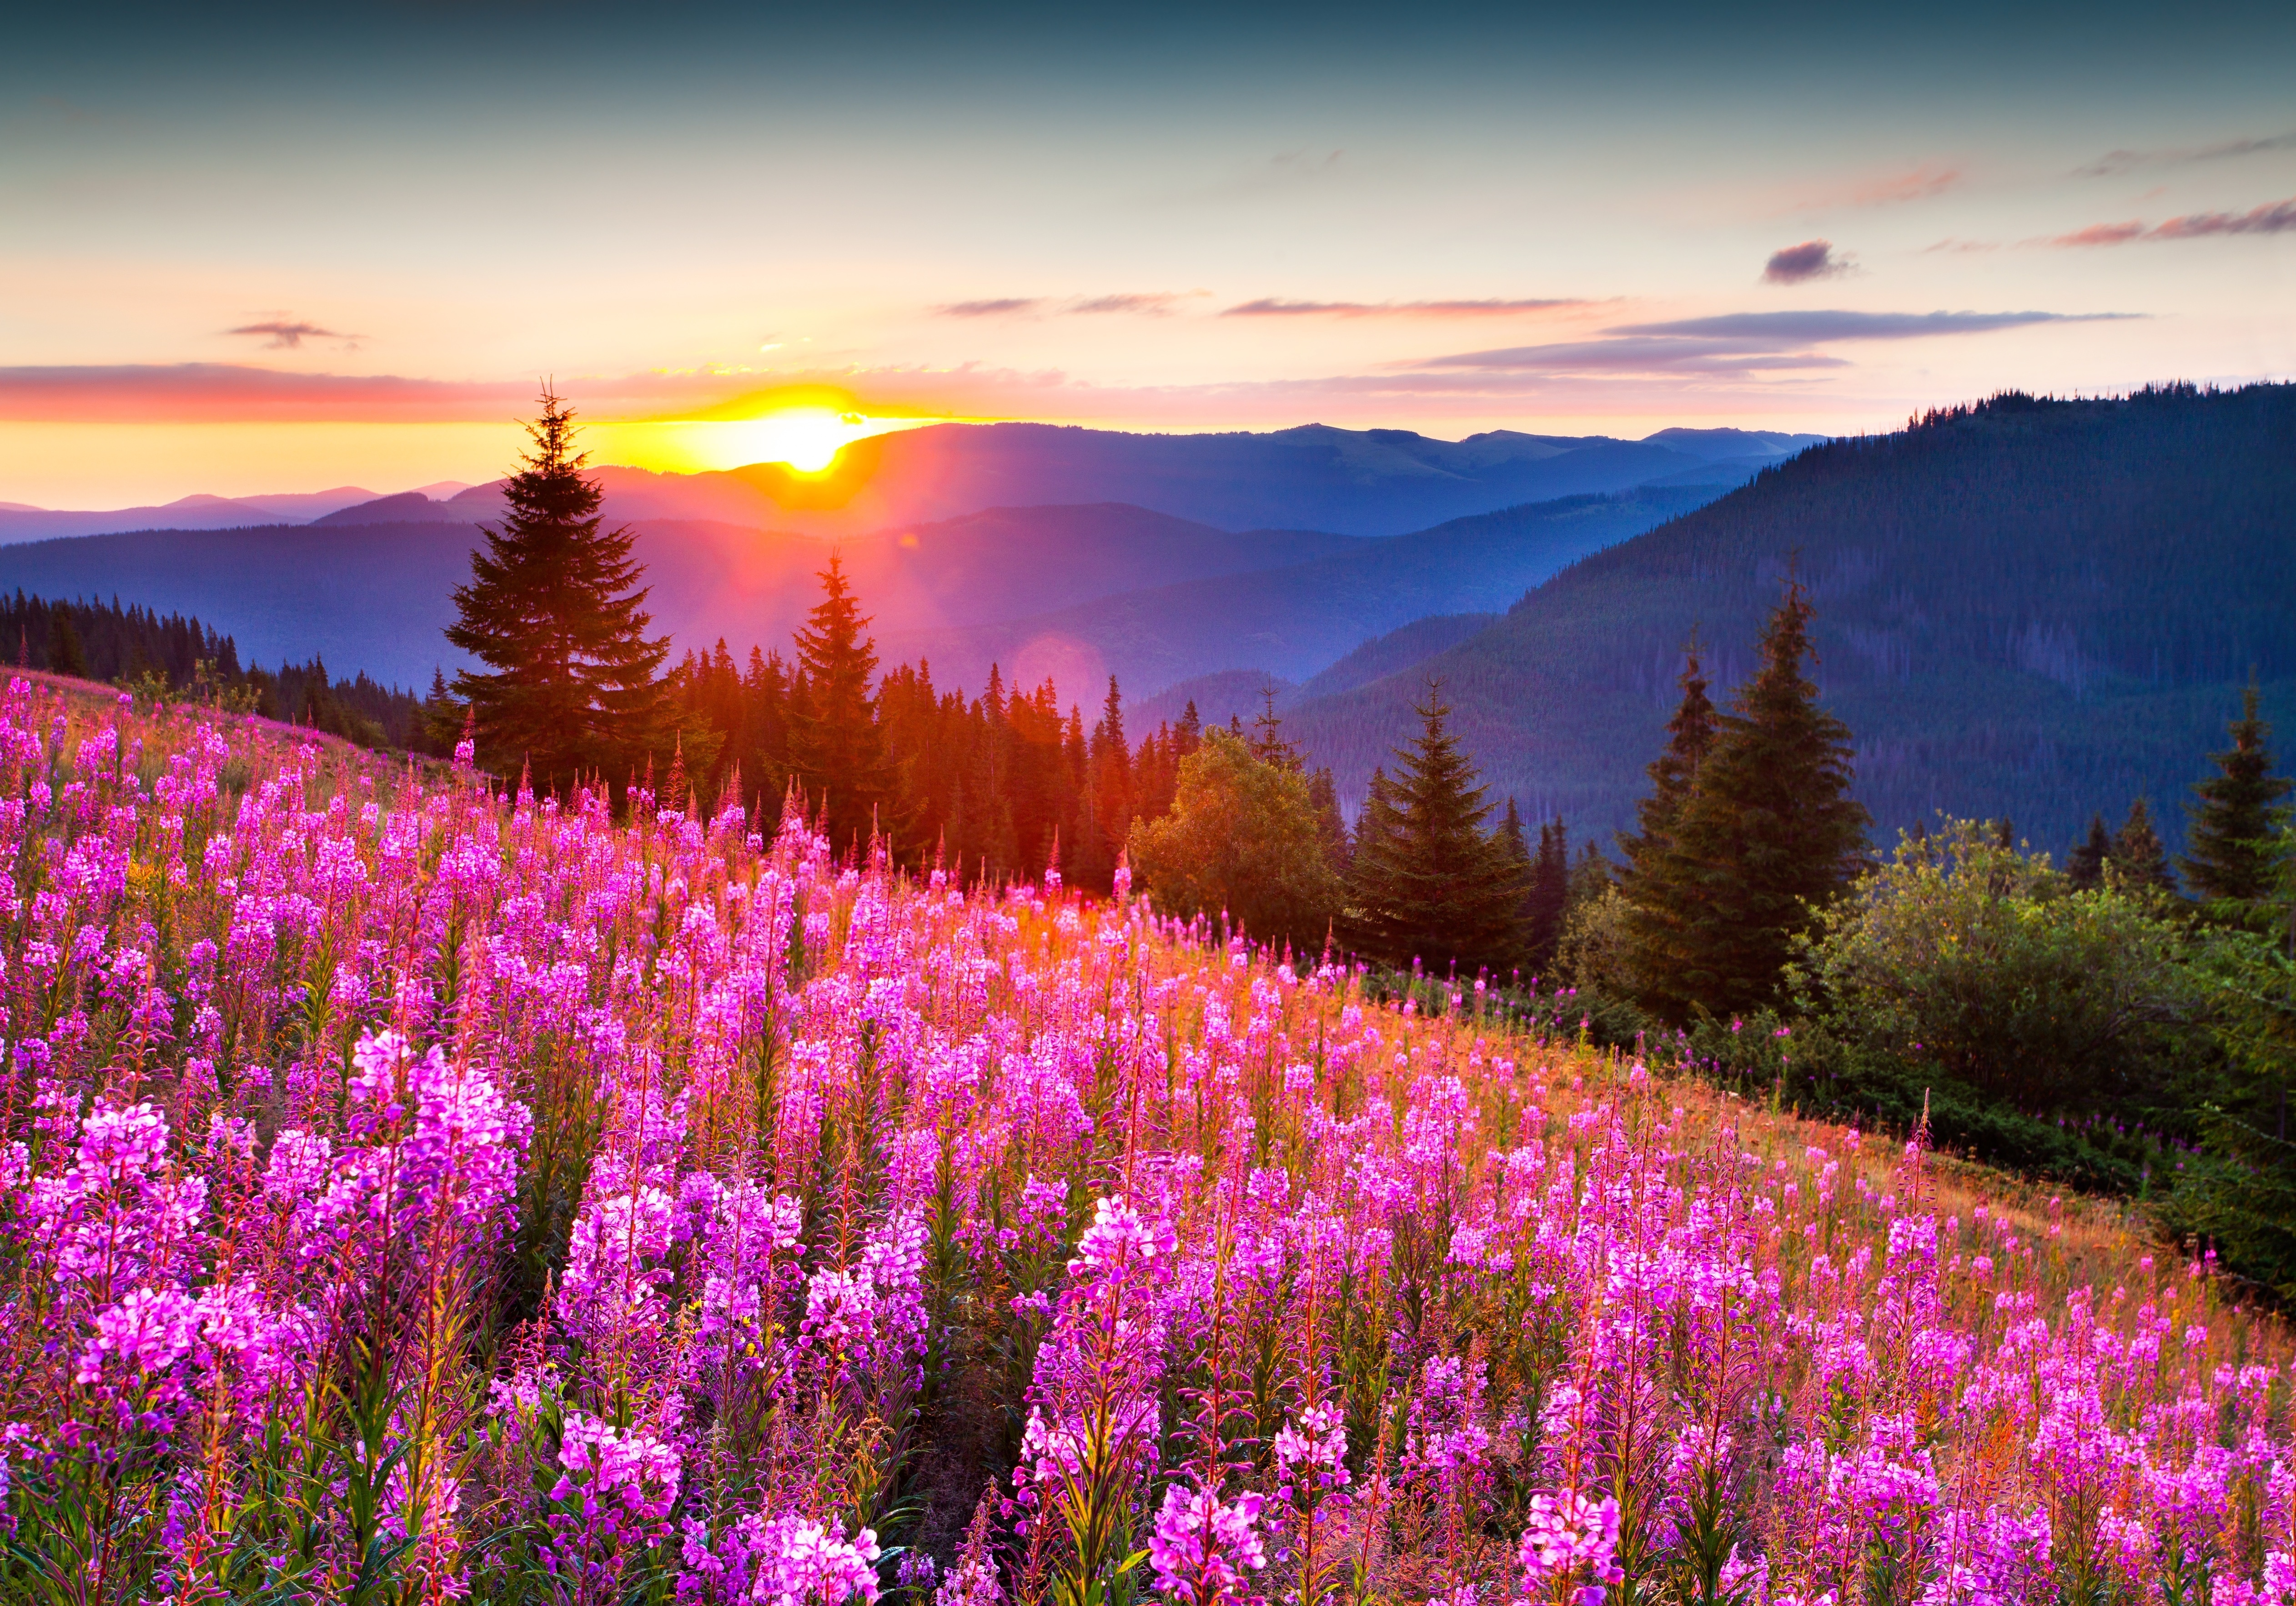 Wallpapers Nature Mountains Flowers Forests Scenery 5049x3532 5049x3532